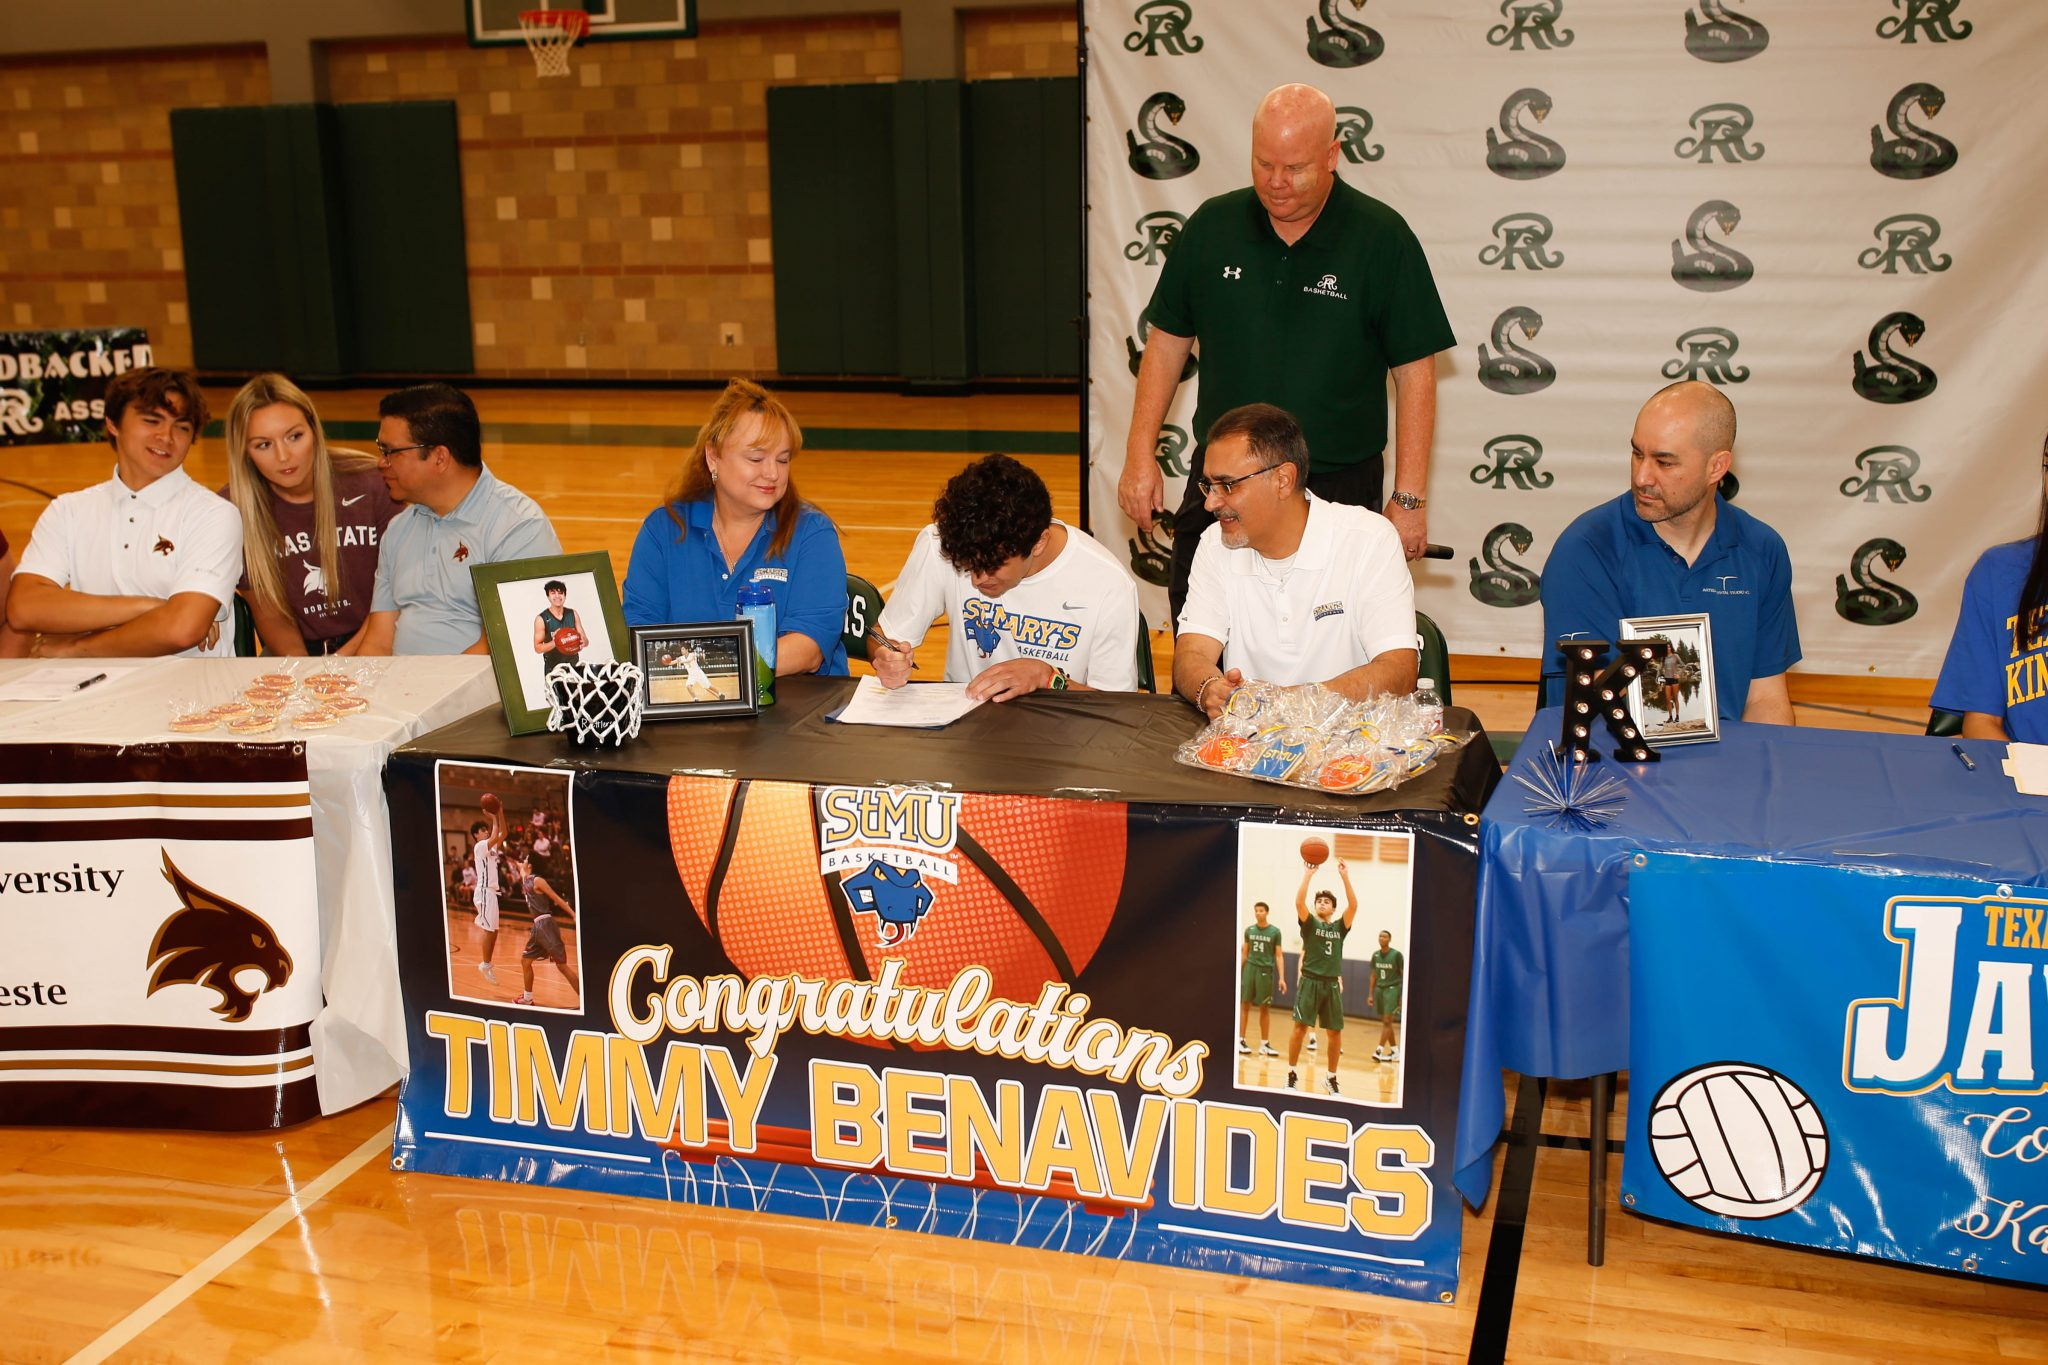 T. Benavides Signing w/St. Mary's